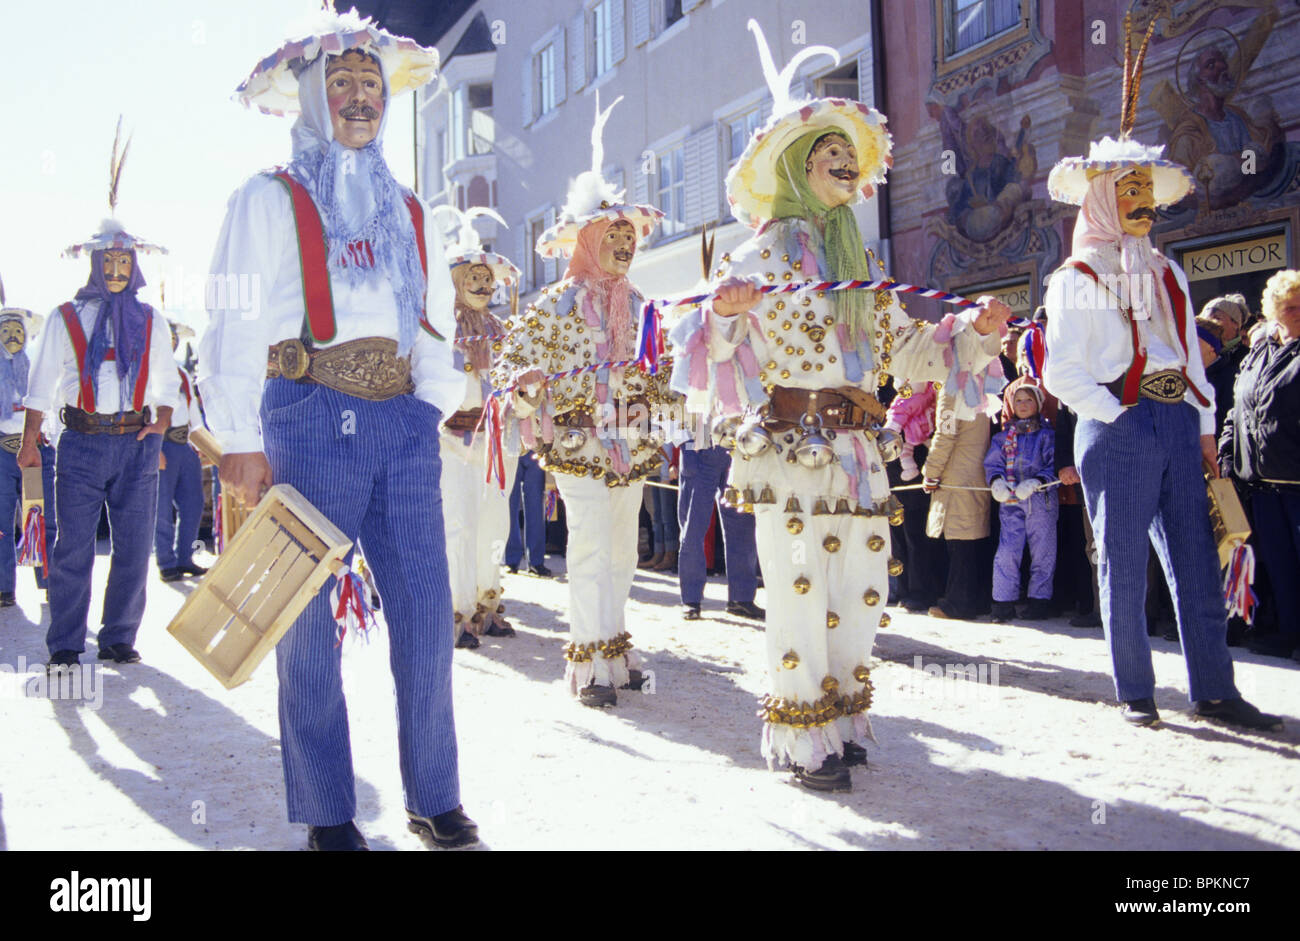 traditional alpine Mardi Gras, Mittenwald, Upper Bavaria, Bavaria, Germany - Stock Image